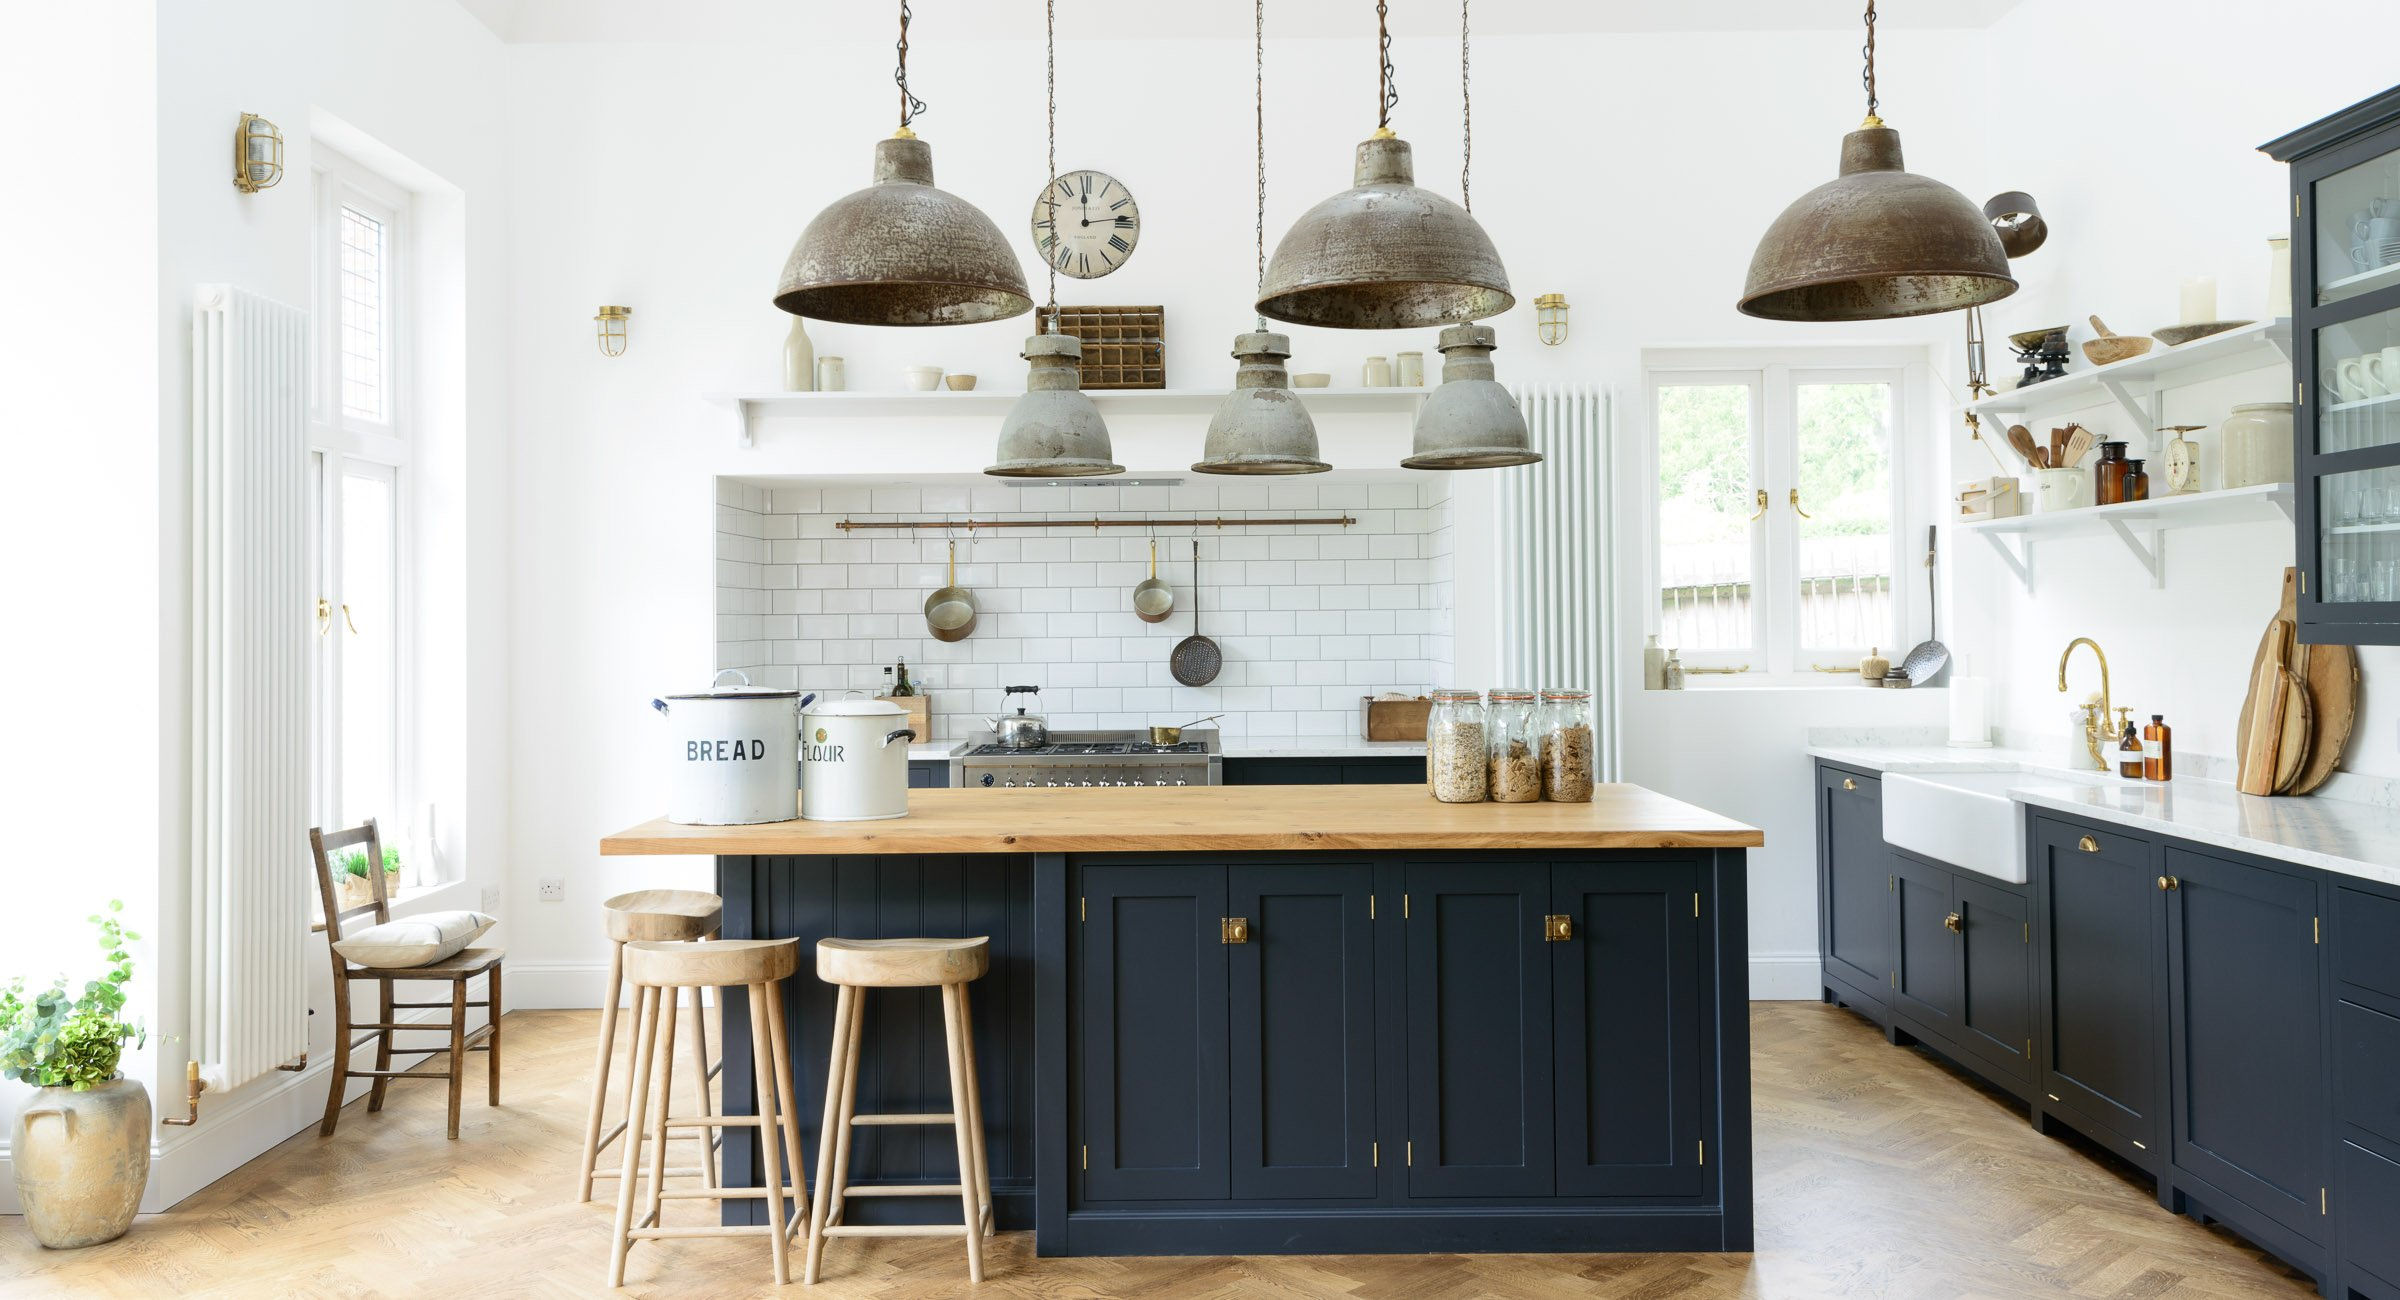 banner-kitchen1.jpg